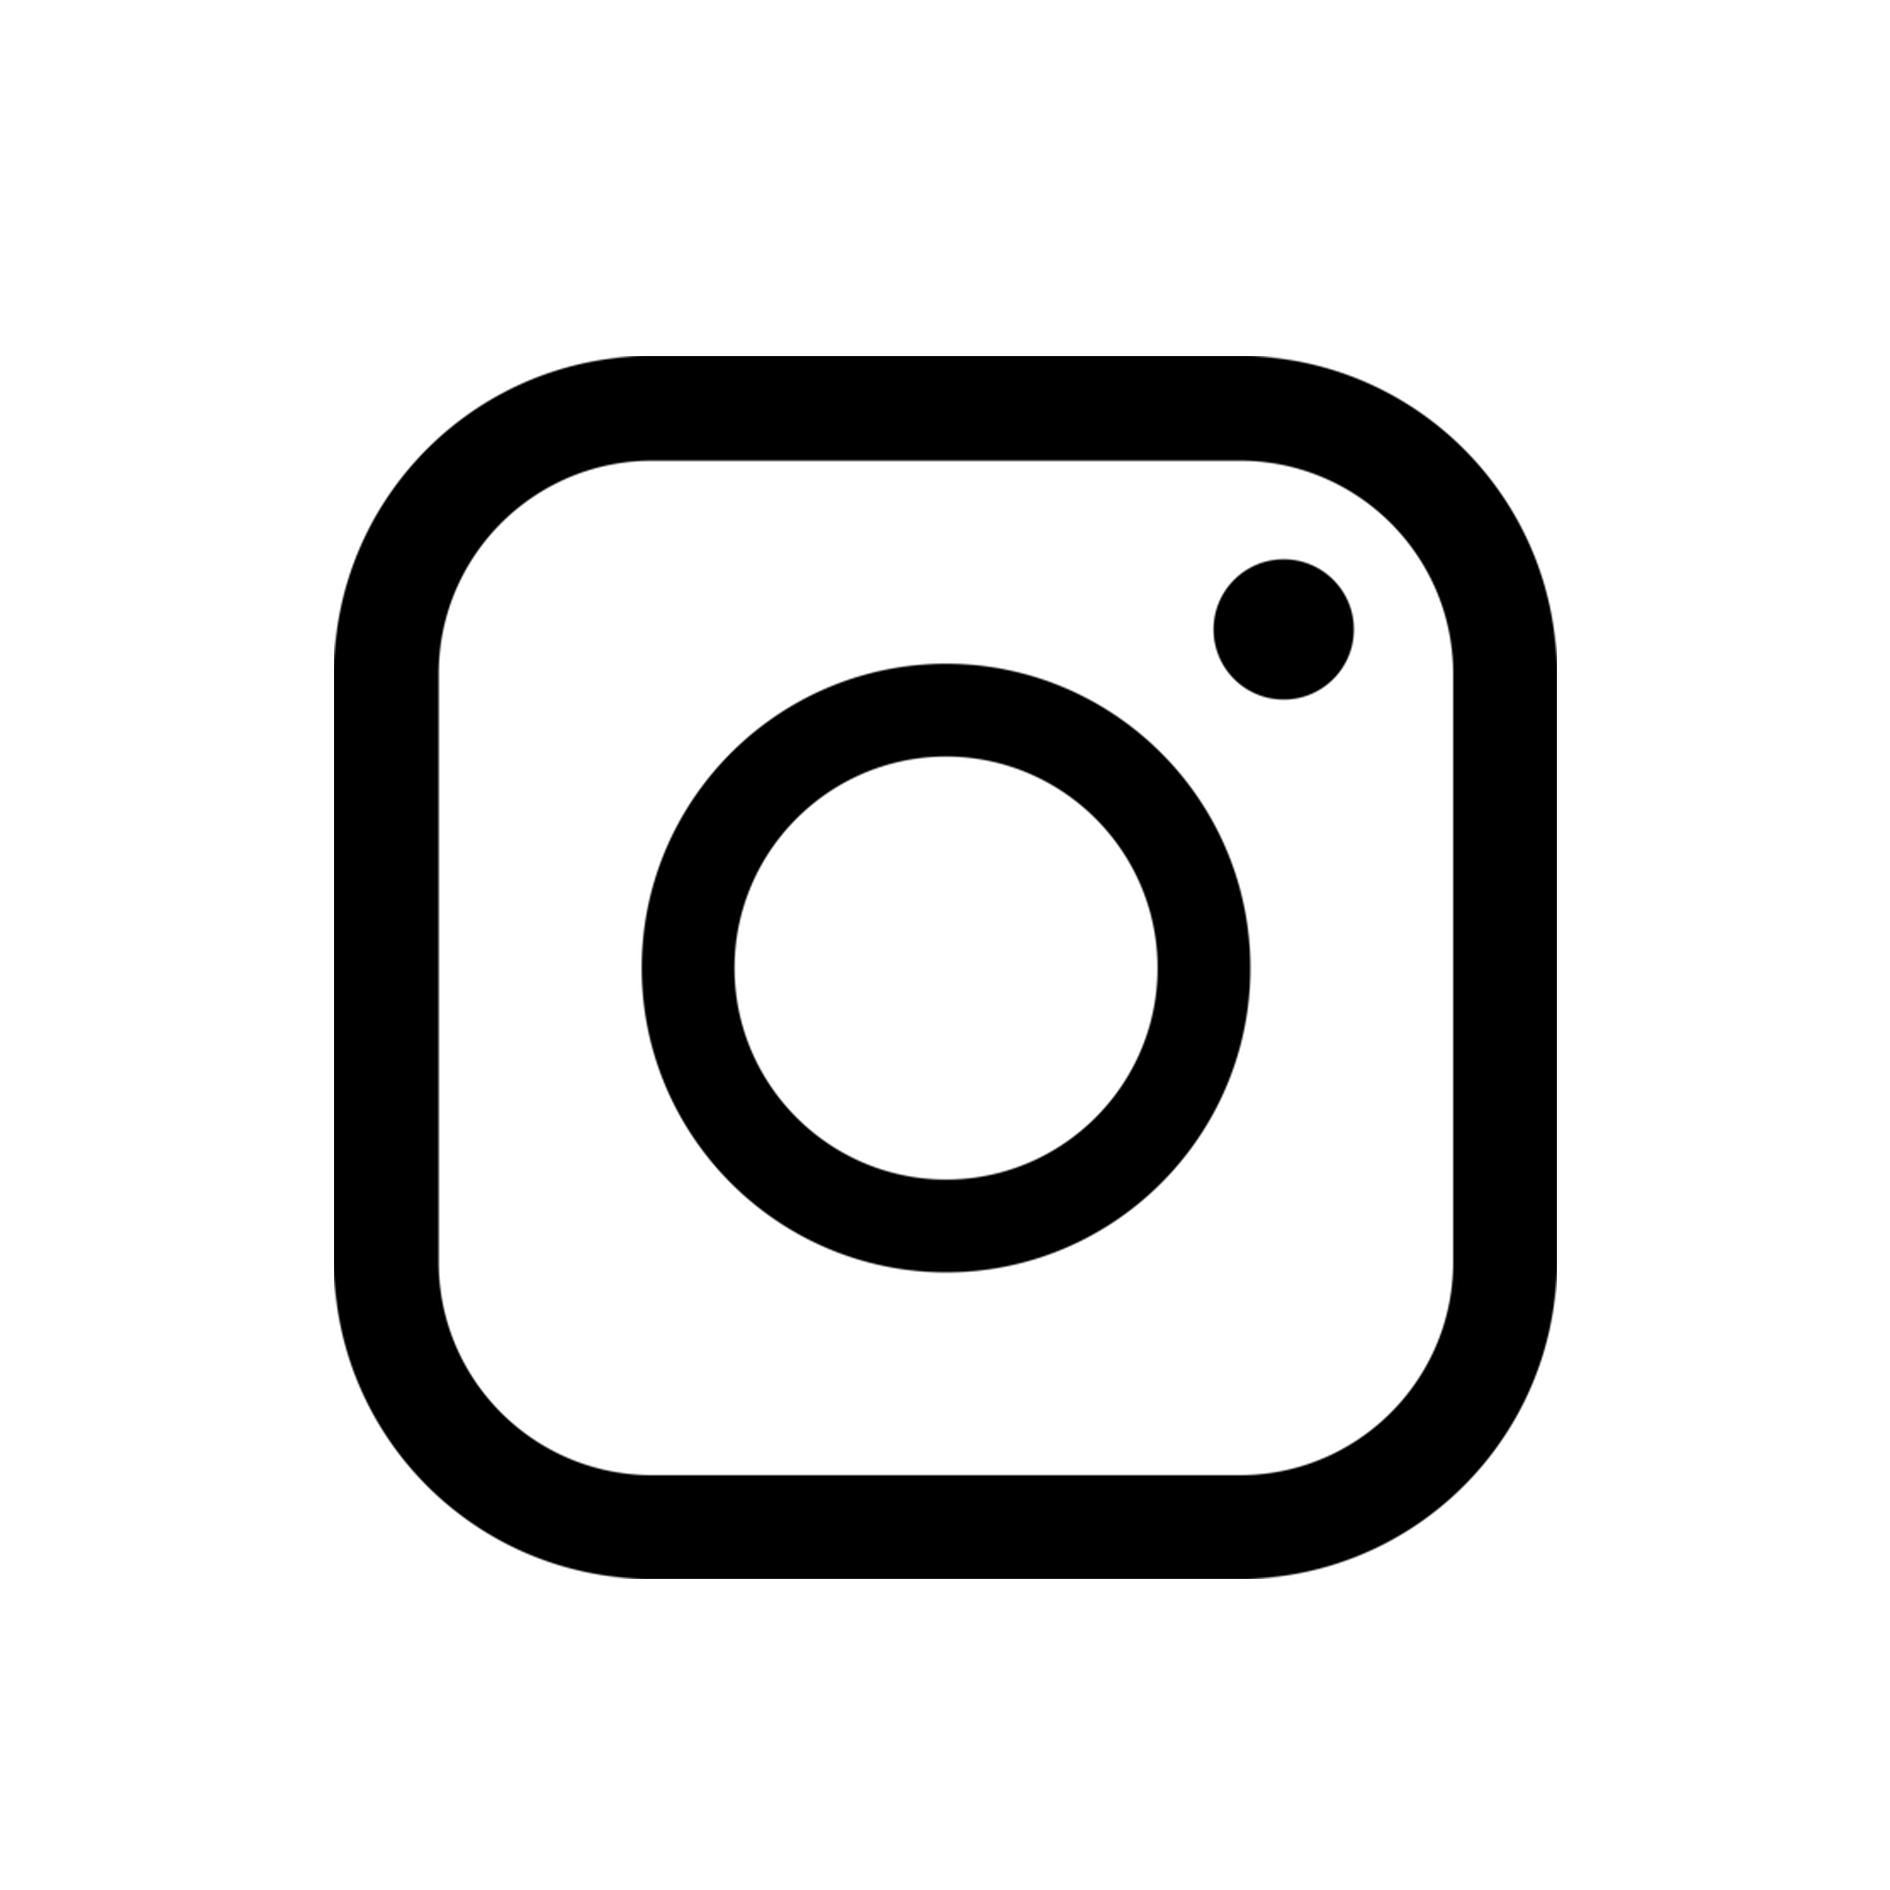 New instagram logo png. With white circle background